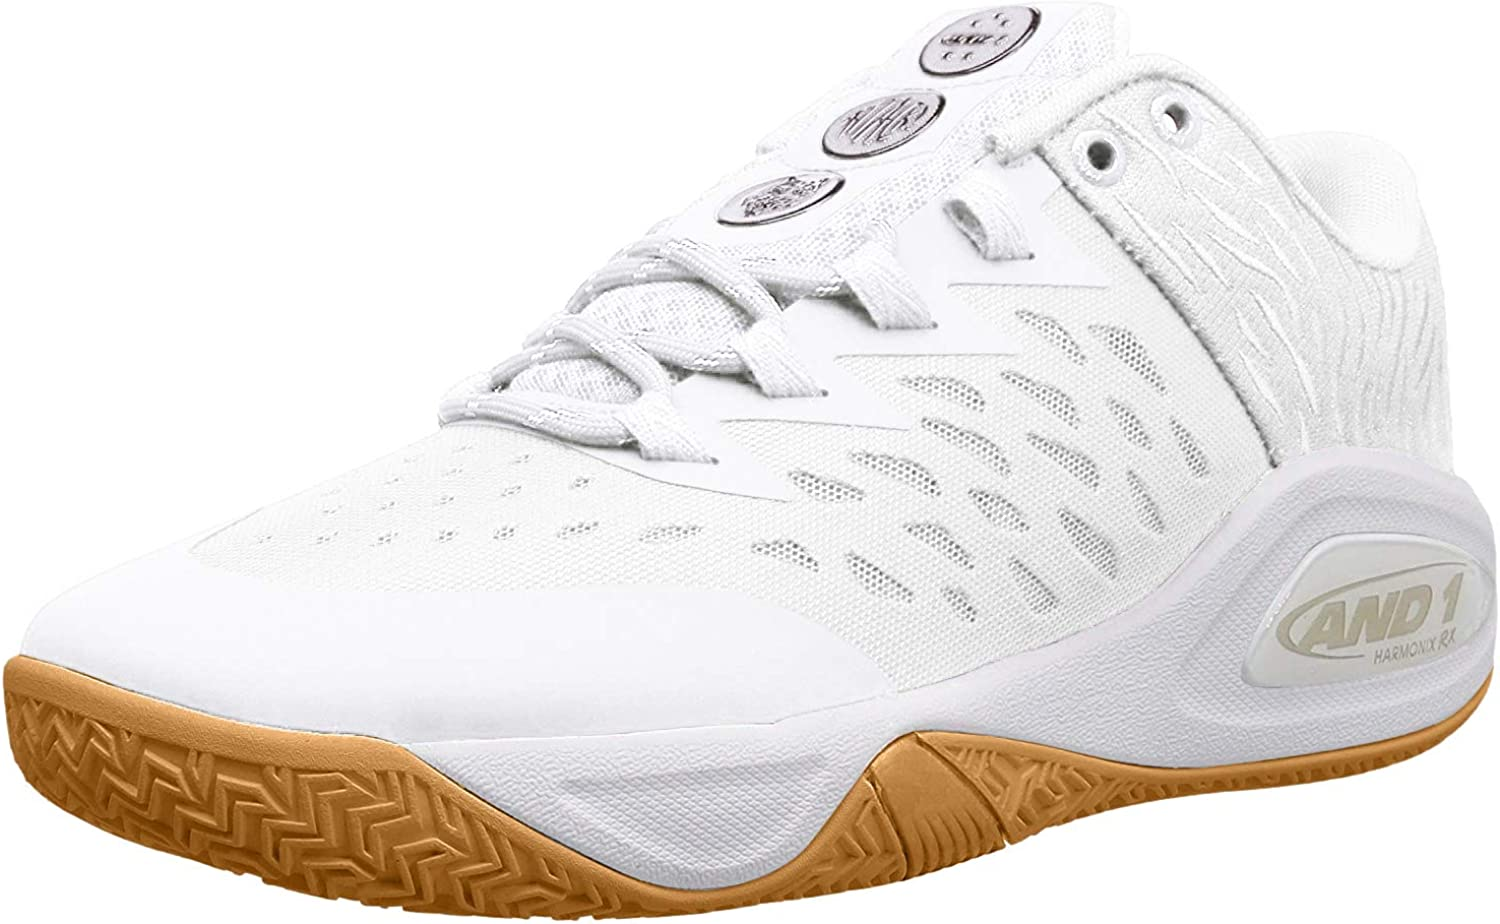 White//Super Foil//Gum 15 AND 1 Mens Attack Low Basketball Shoe